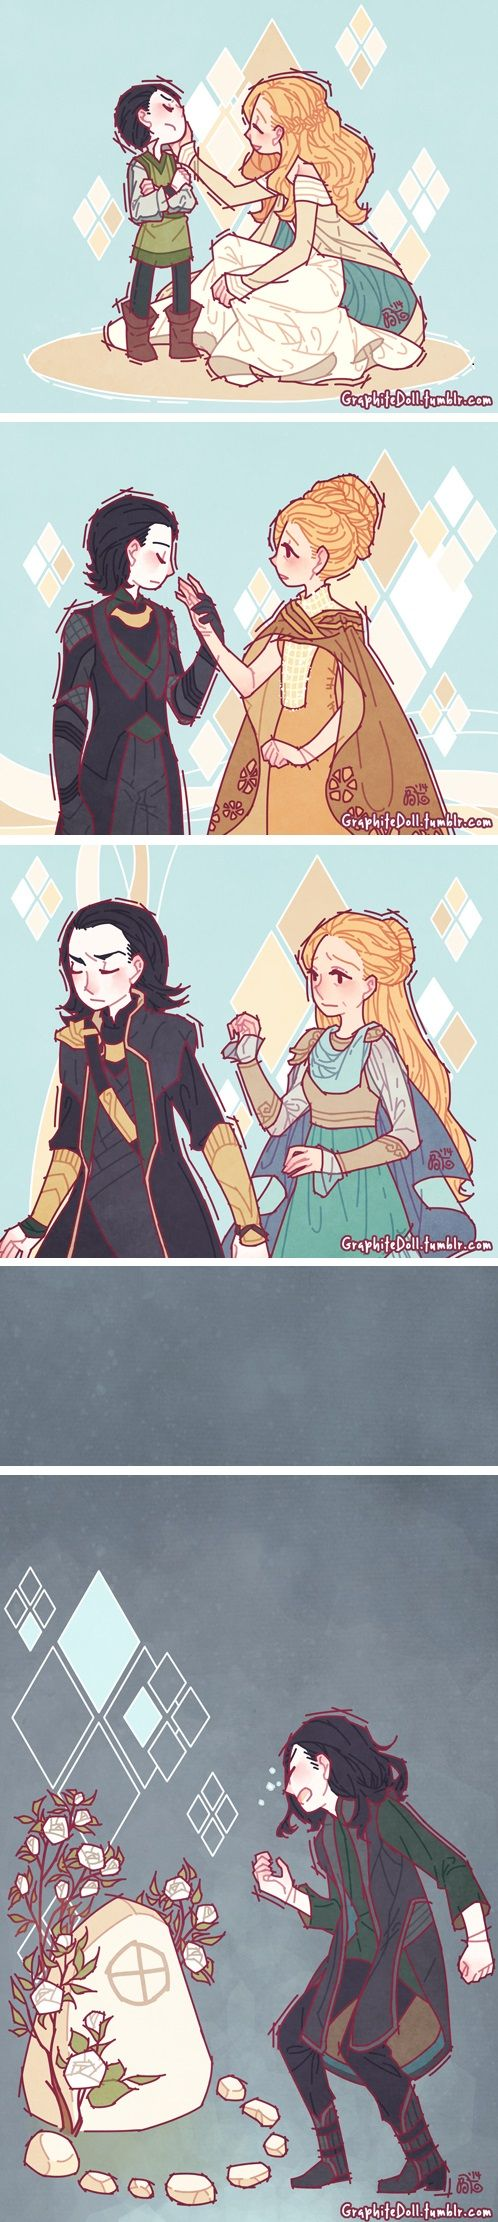 Loki and Frigga... So many feels.......  :(